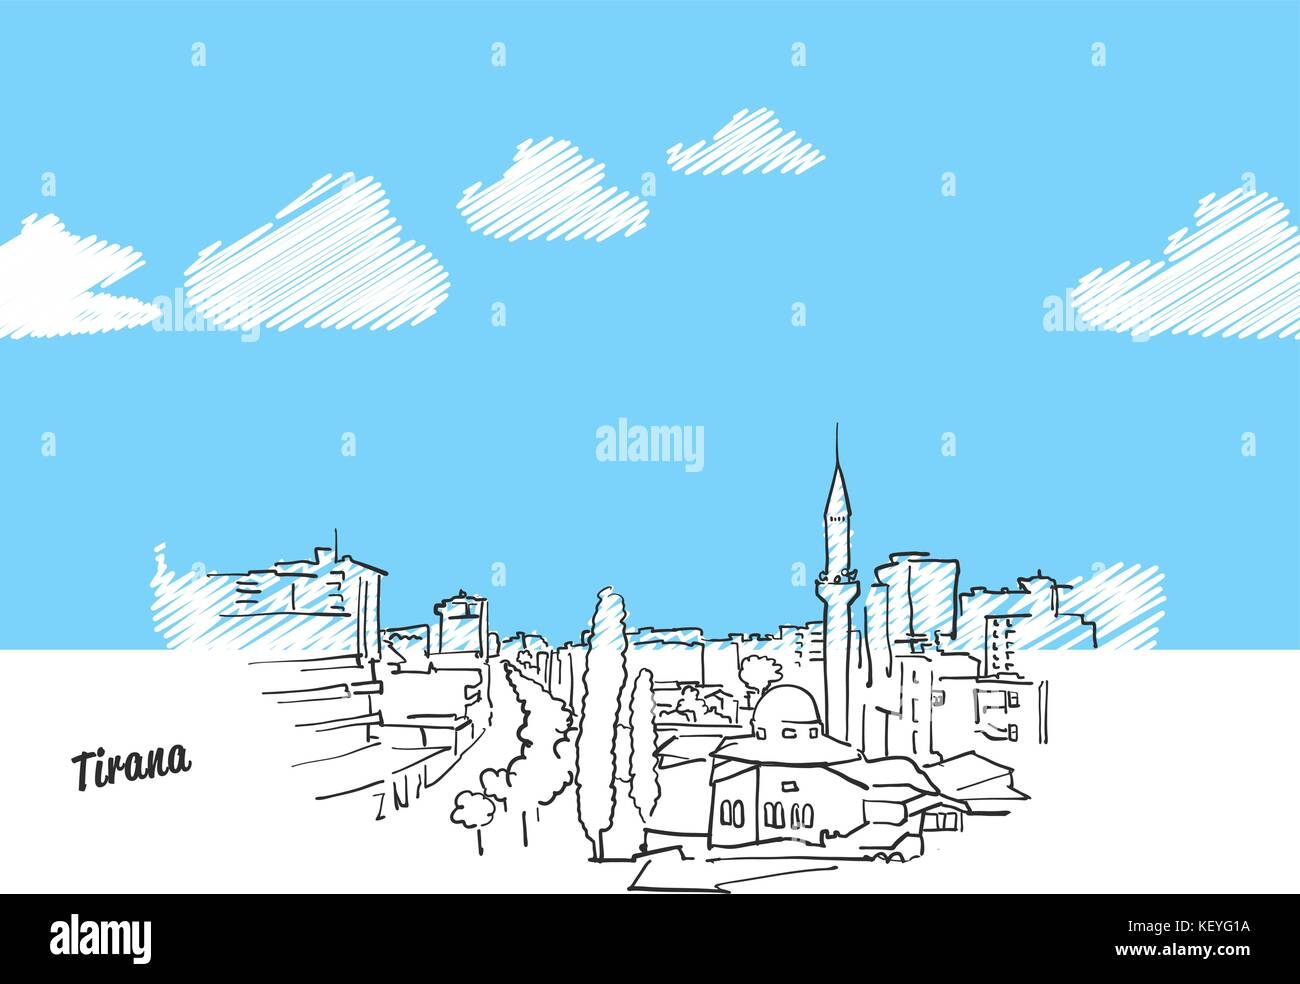 Tirana, Albania Famous Skyline Sketch. Lineart drawing by hand. Greeting card icon with title. Vector Illustration - Stock Vector